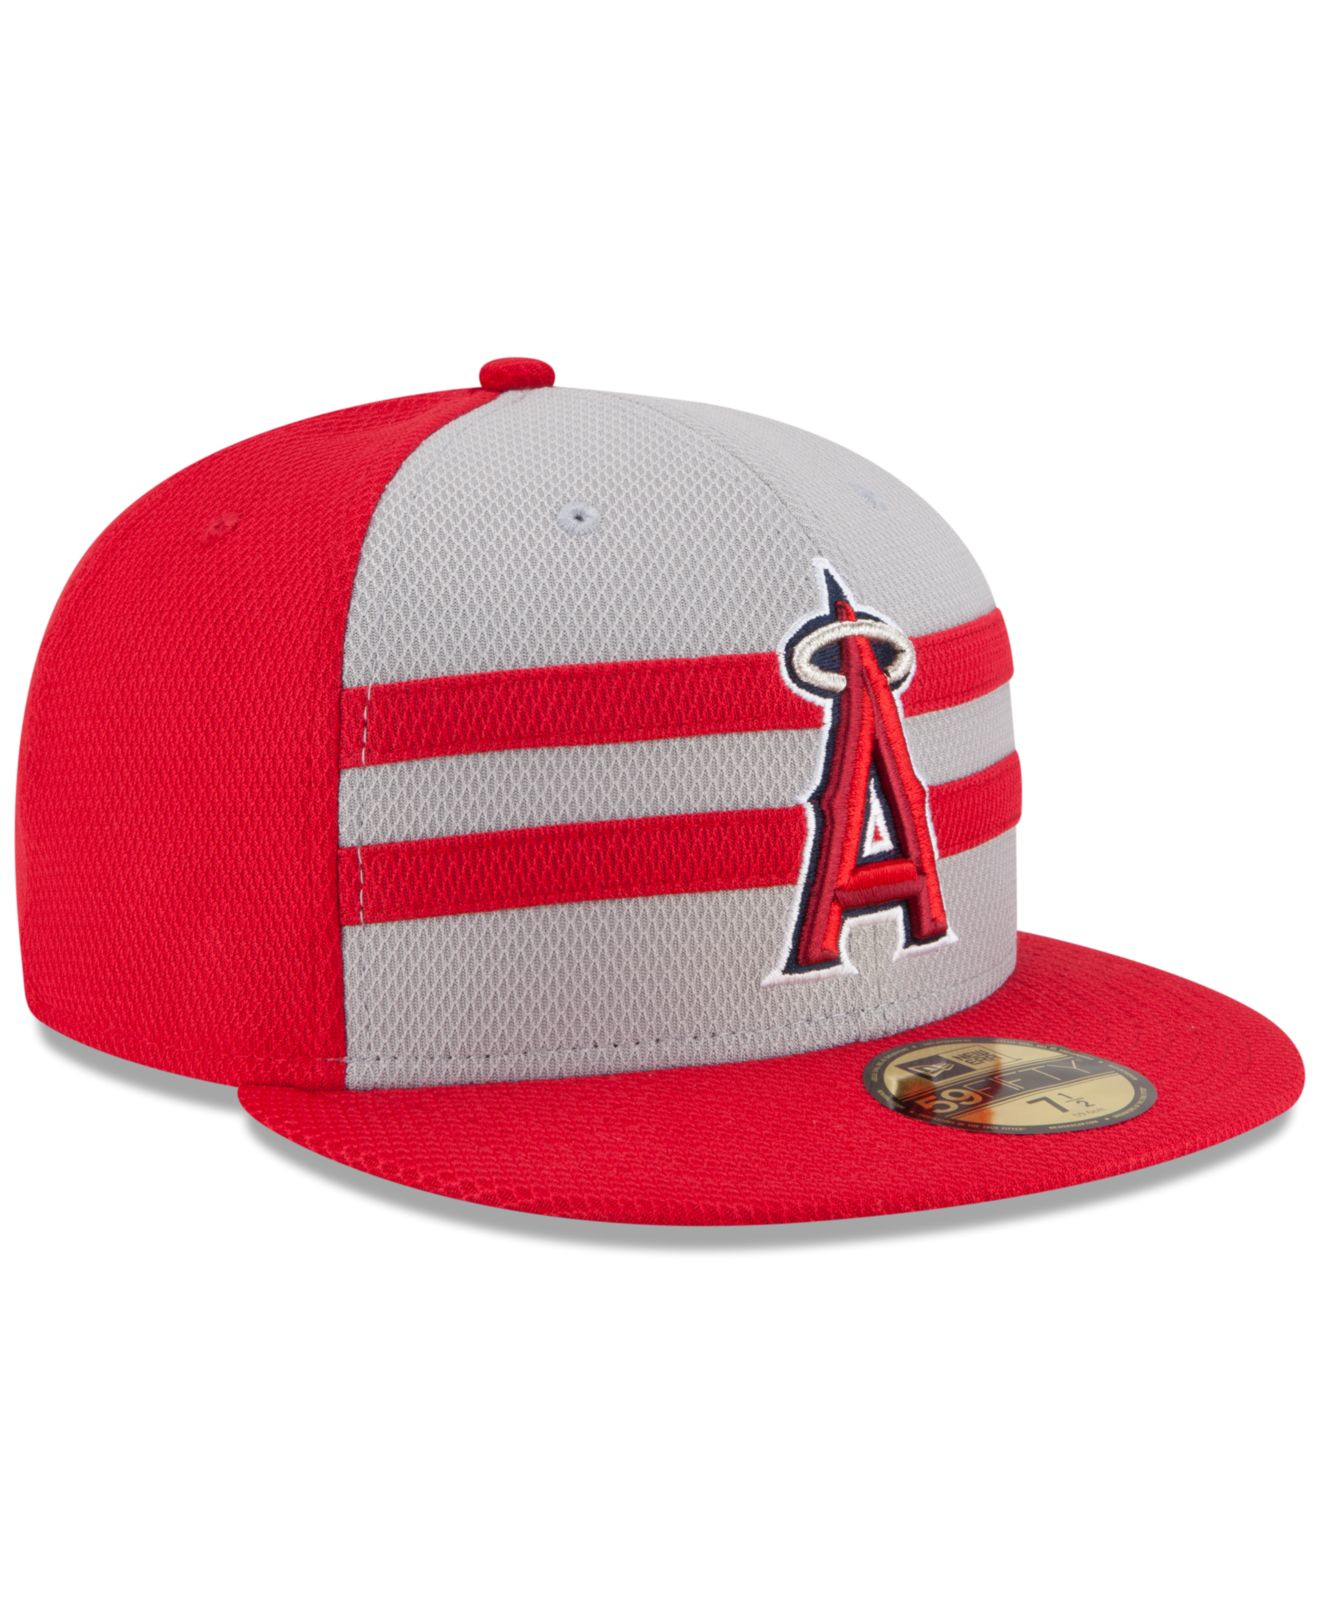 c86d1d123 KTZ Los Angeles Angels Of Anaheim 2015 All Star Game 59fifty Cap in ...